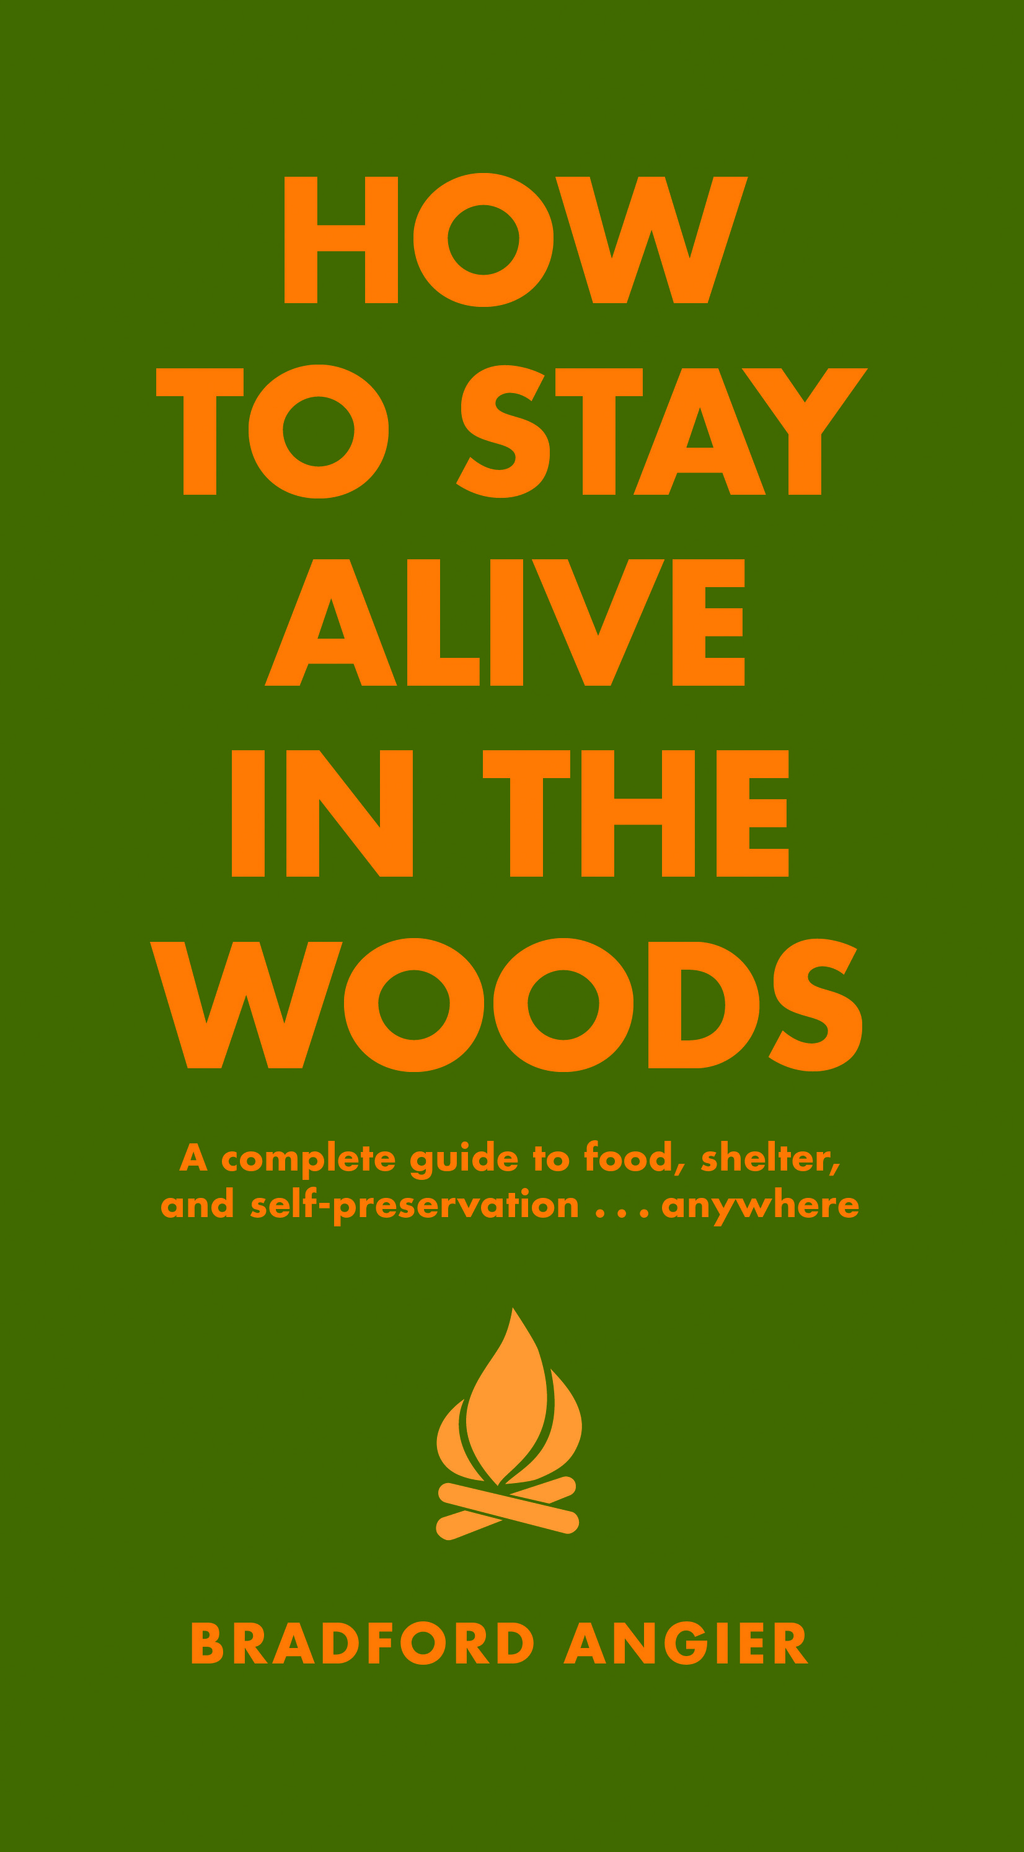 How to Stay Alive in the Woods: A Complete Guide to Food, Shelter and Self-Preservation Anywhere By: Bradford Angier